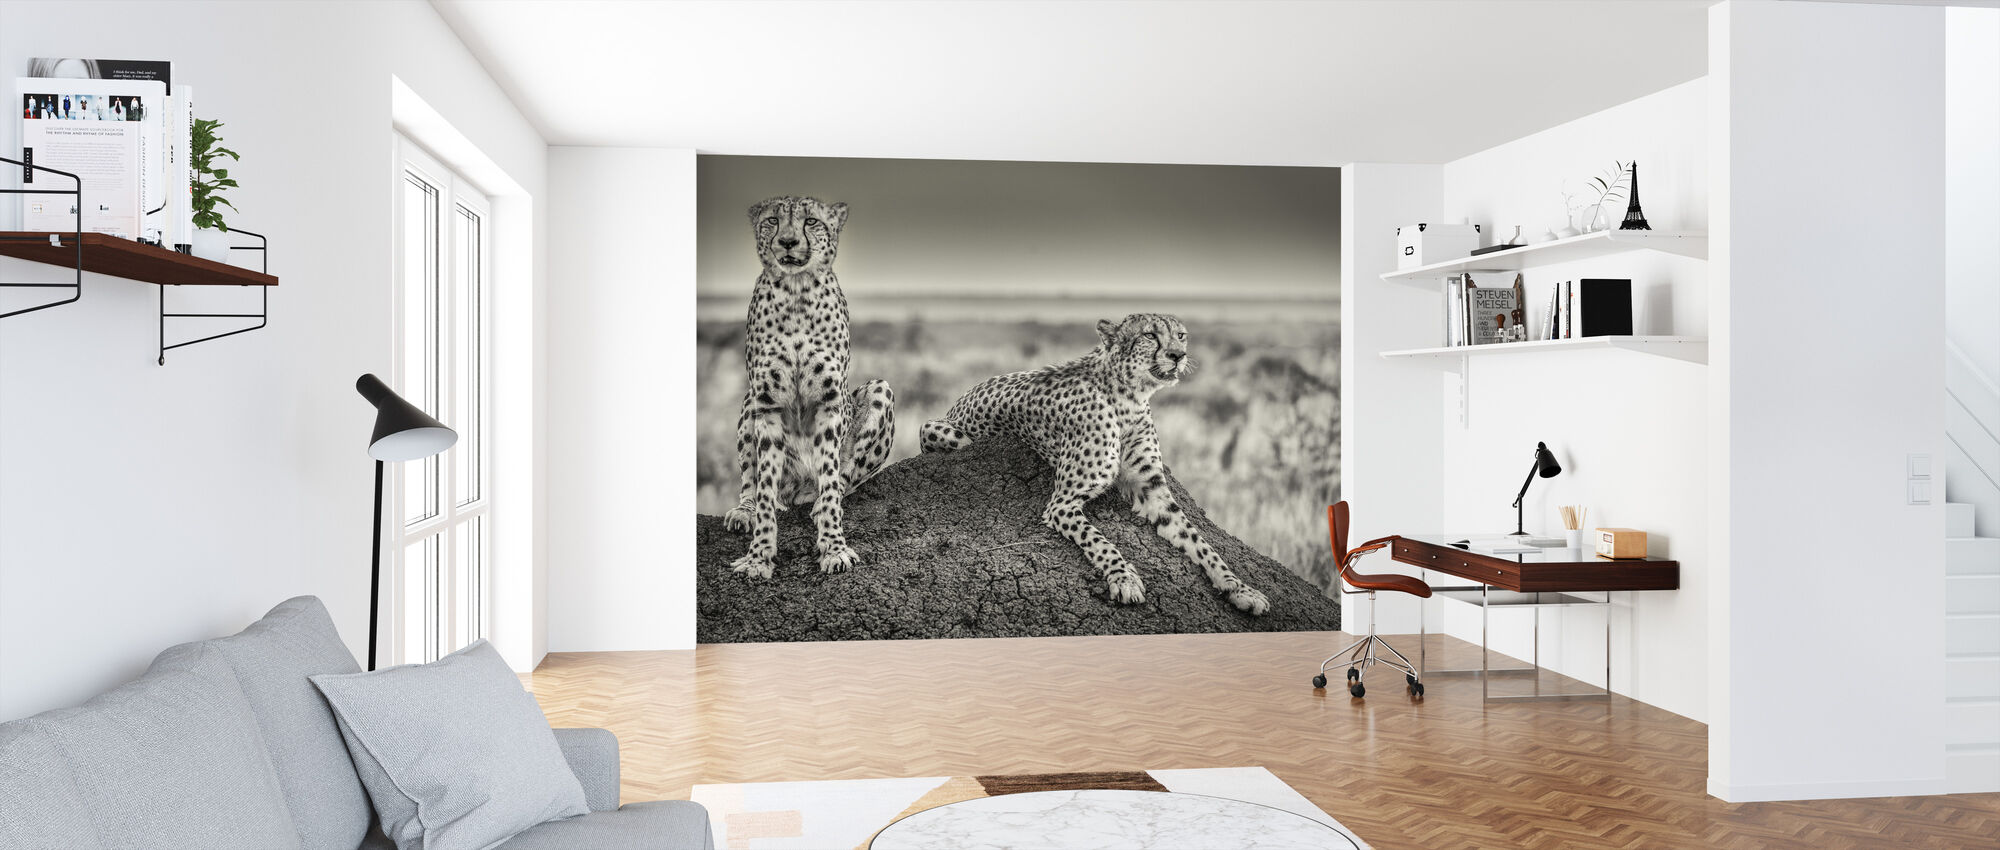 Two Cheetahs Watching Out - Wallpaper - Office